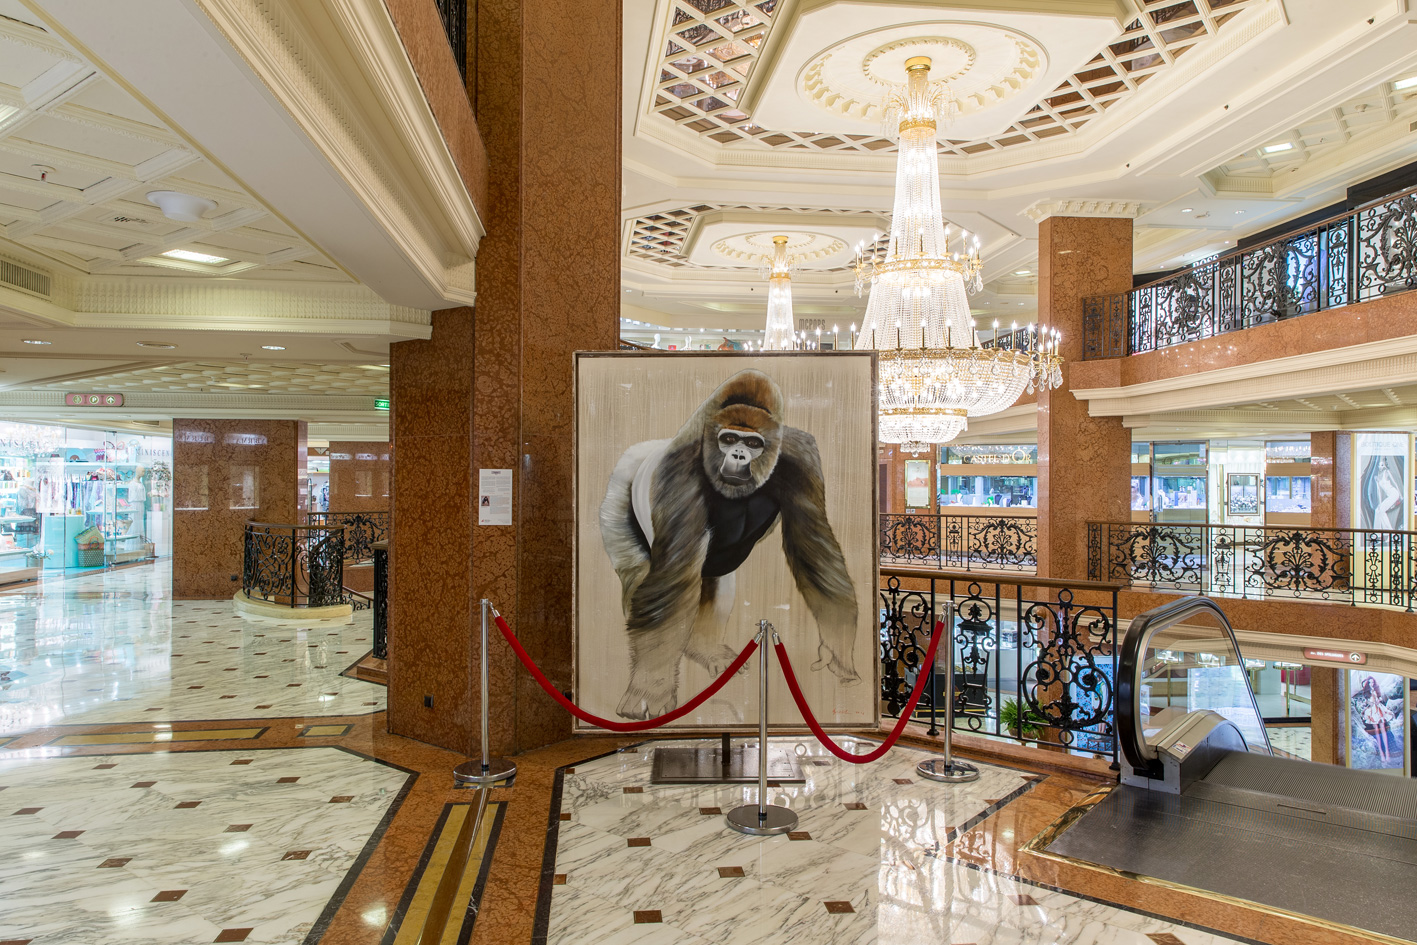 CENTRE METROPOLE MONACO gorilla-ape-silverback-threatened-endangered-extinction Animal painting by Thierry Bisch pets wildlife artist painter canvas art decoration